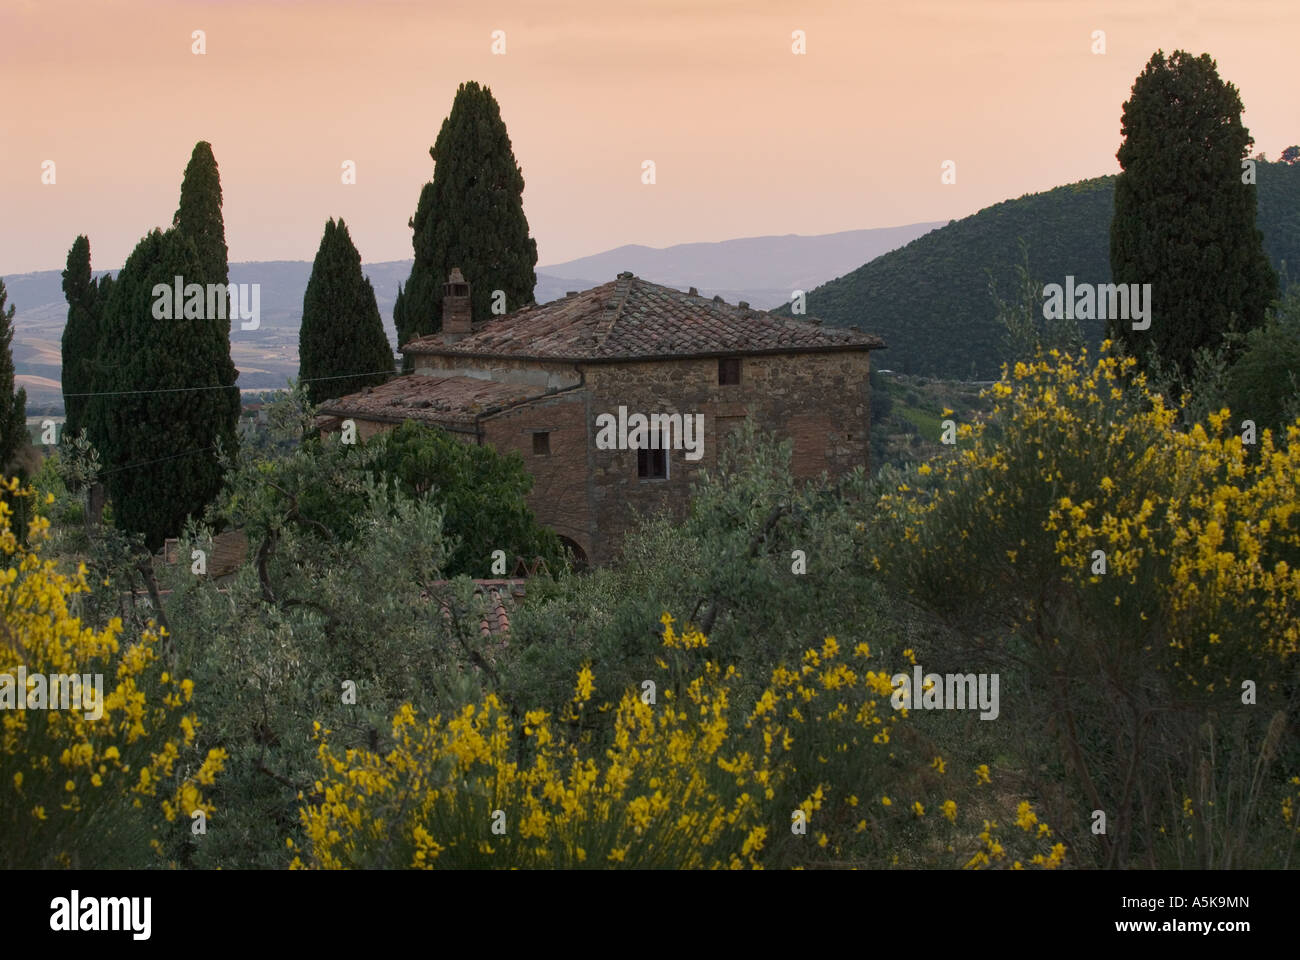 Country house in the midst of cypresses and blooming broom bushes near Montalcino, Tuscany, Italy - Stock Image